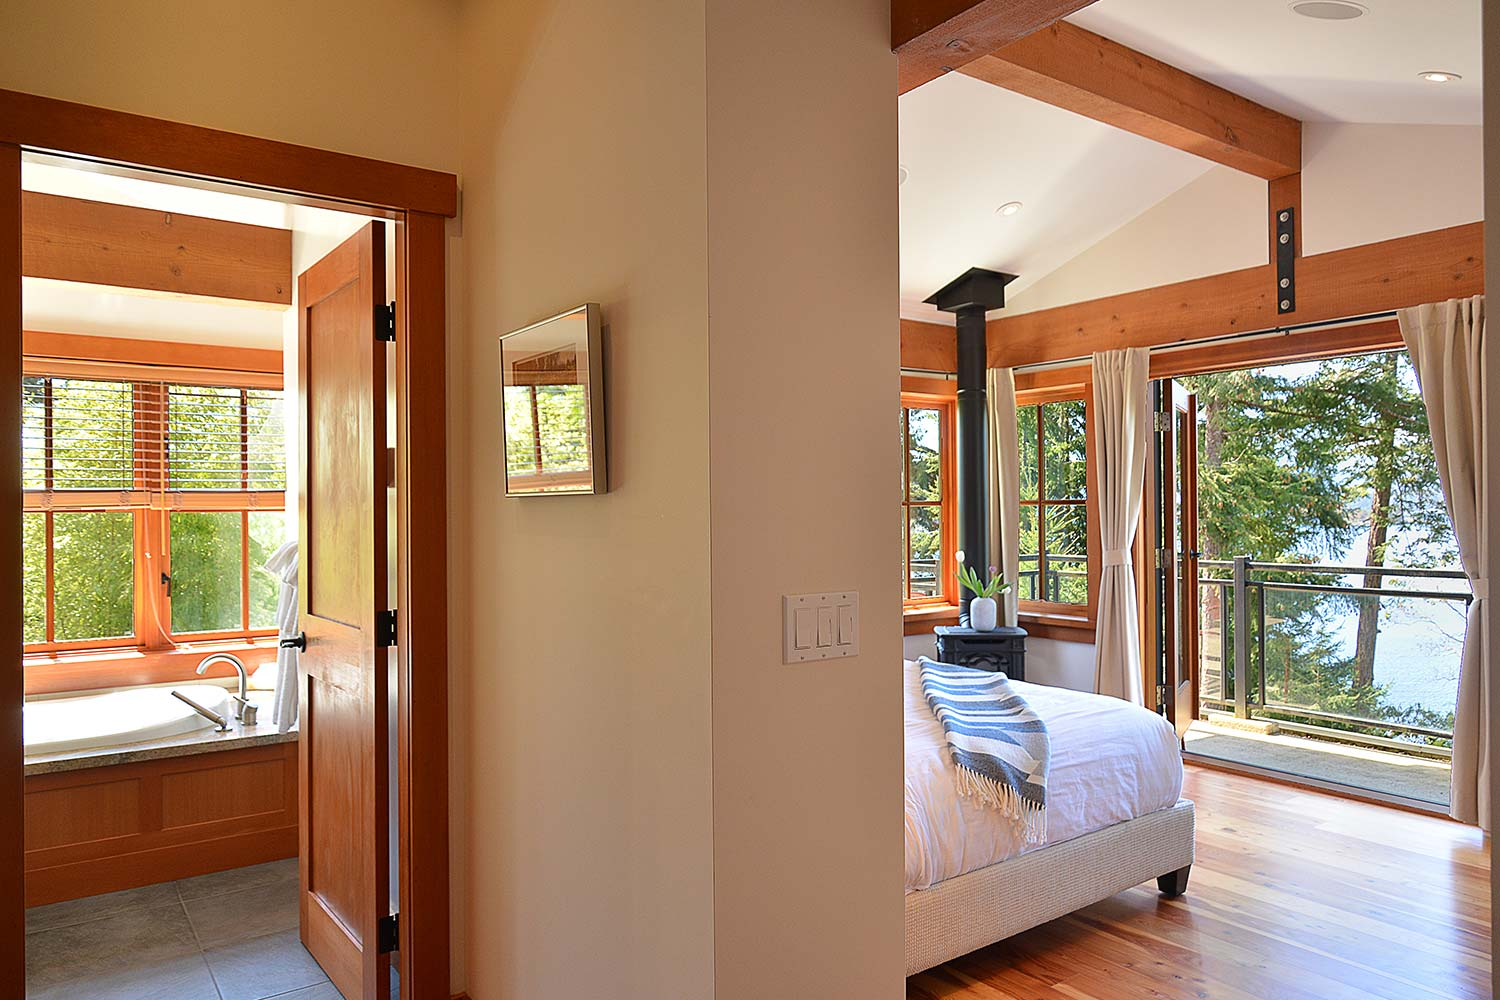 The bedroom of this oceanfront house rental has incredible views of the harbour and a nearby bathroom with a large bath.